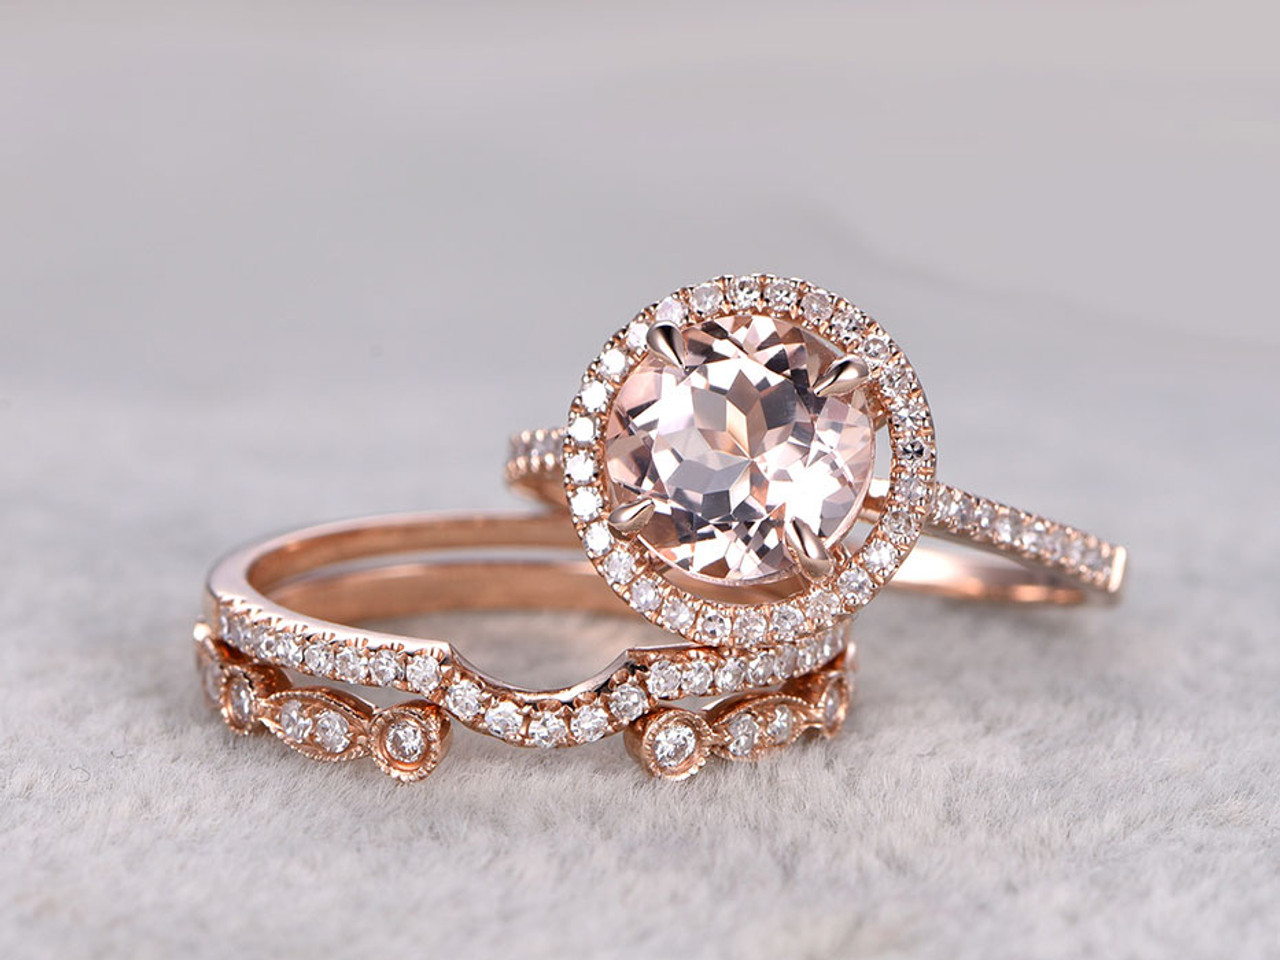 pin rose engagement rings your heart morganite stunning gold cut wedding that diamond pearl melt